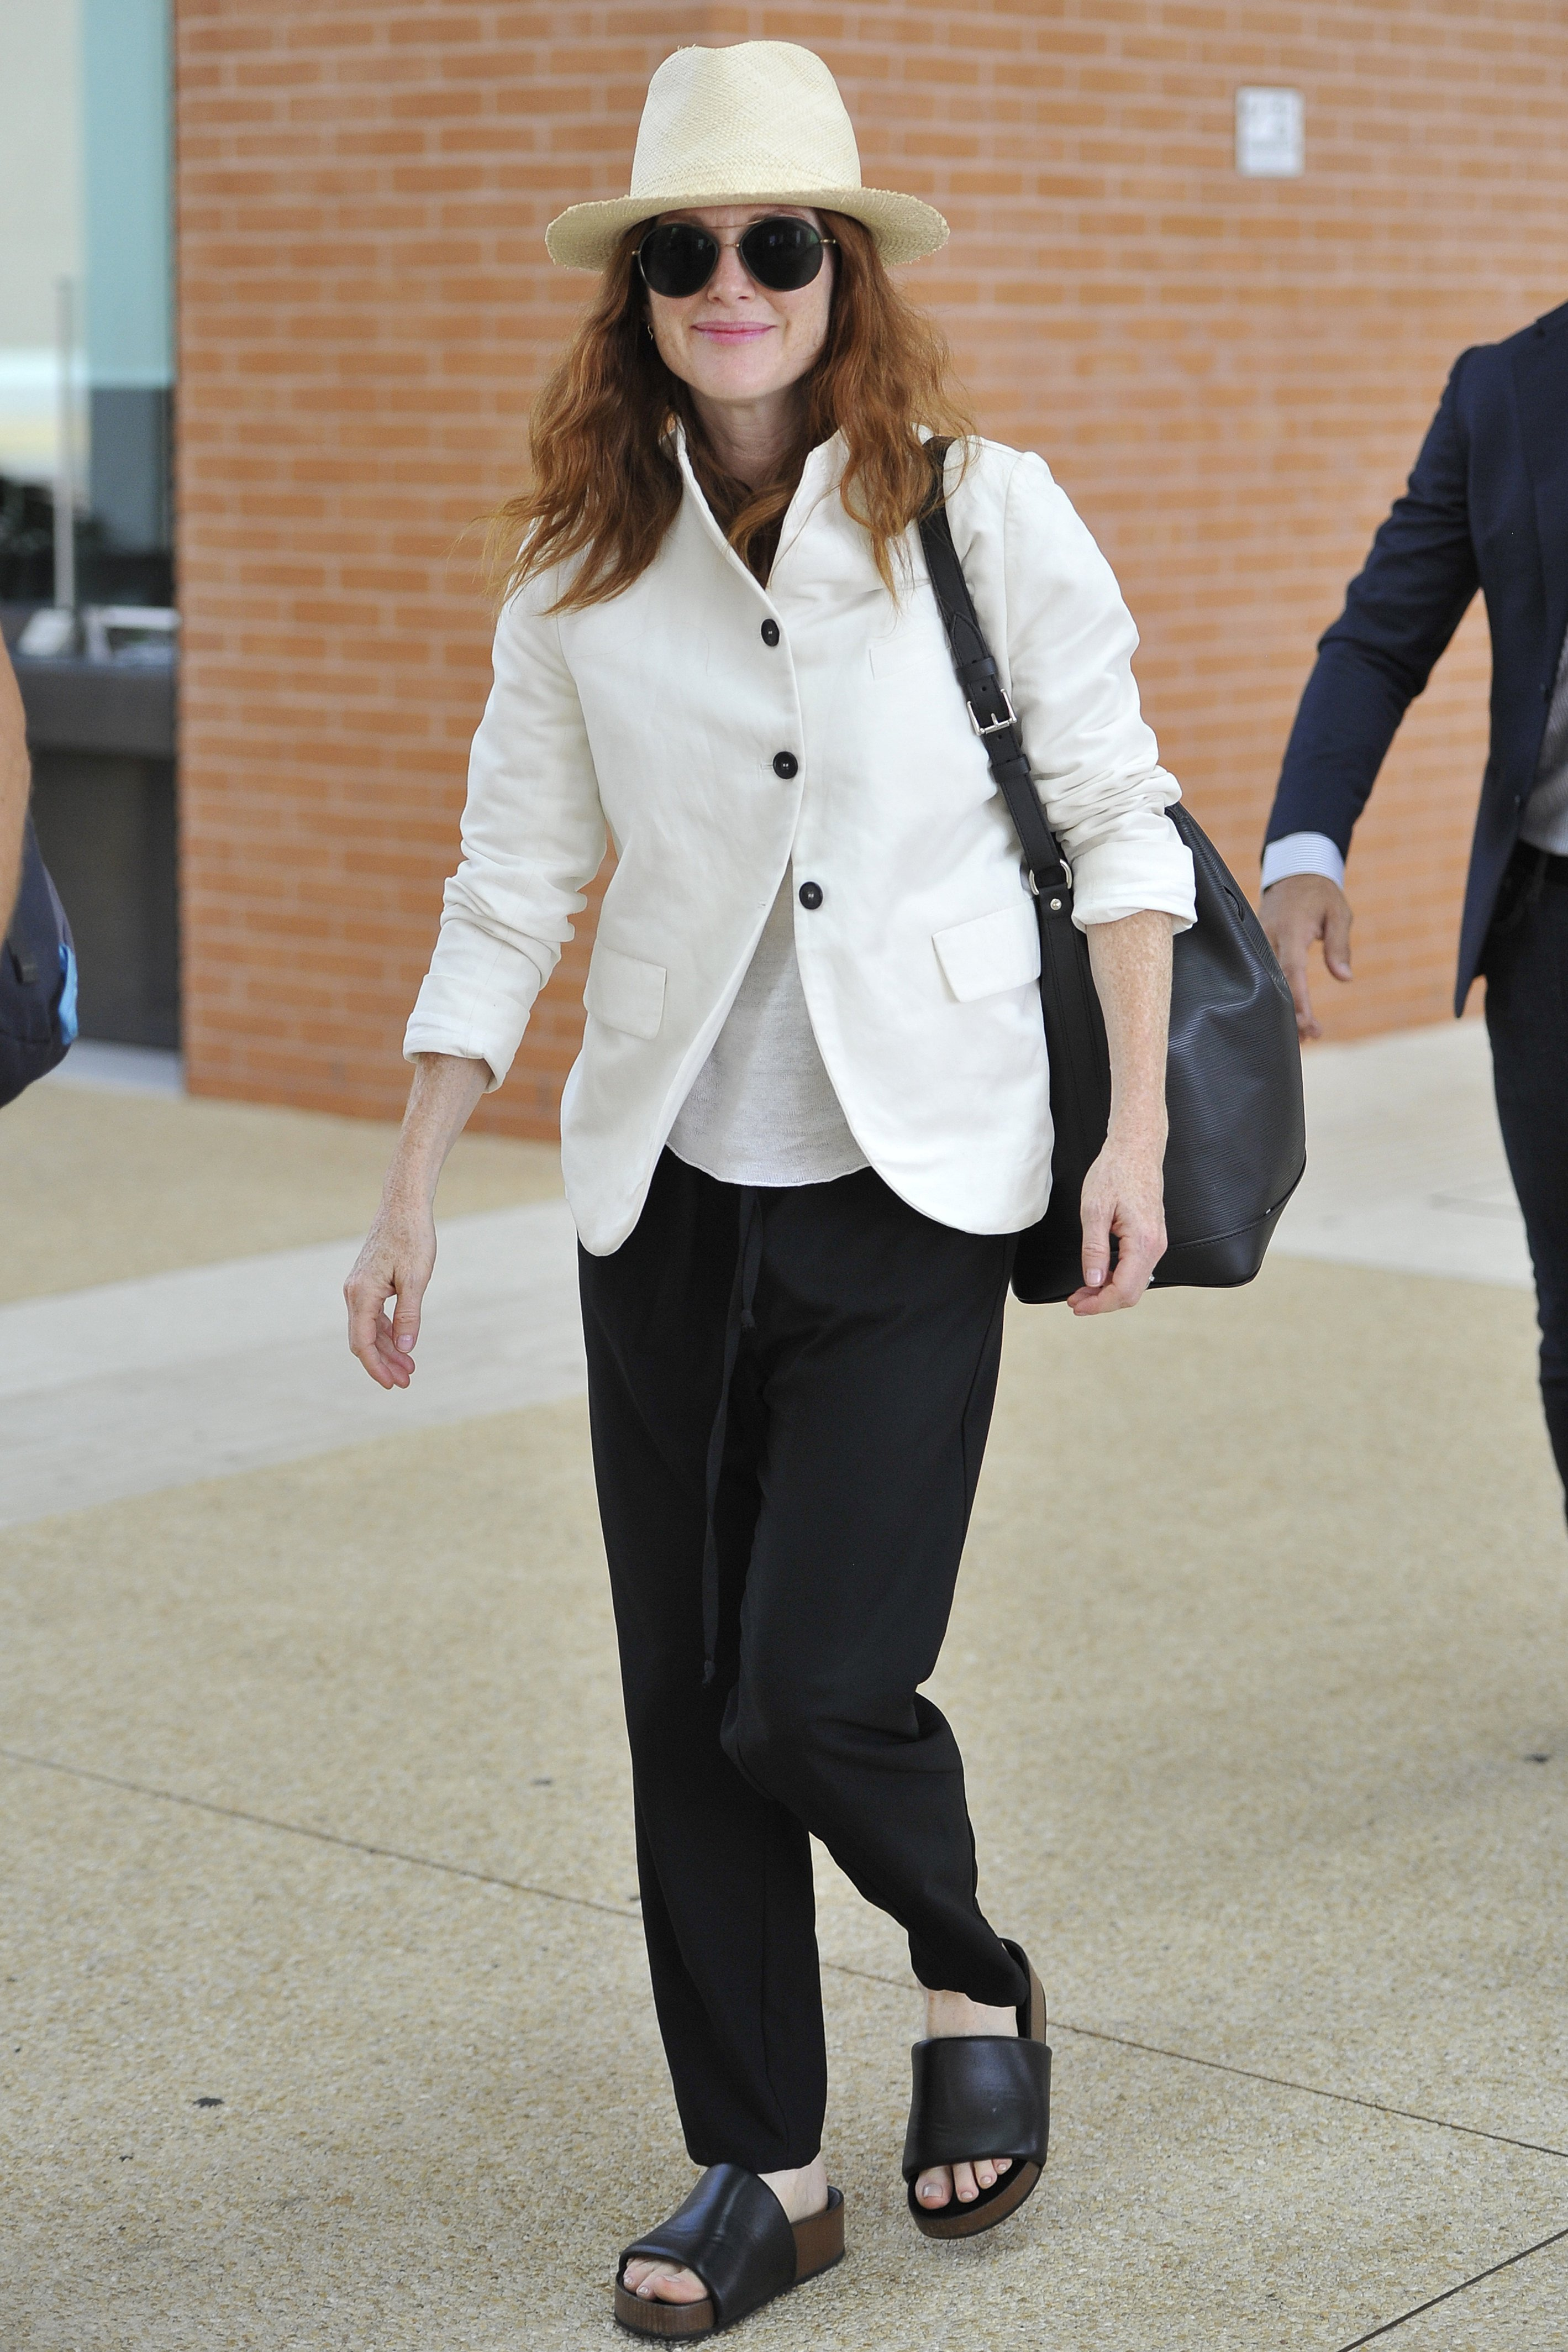 Julianne Moore    74nd Venice Film Festival Julianne Moore airport Venice Italy 31-08-2017, Image: 347815095, License: Rights-managed, Restrictions: , Model Release: no, Credit line: Profimedia, SGP